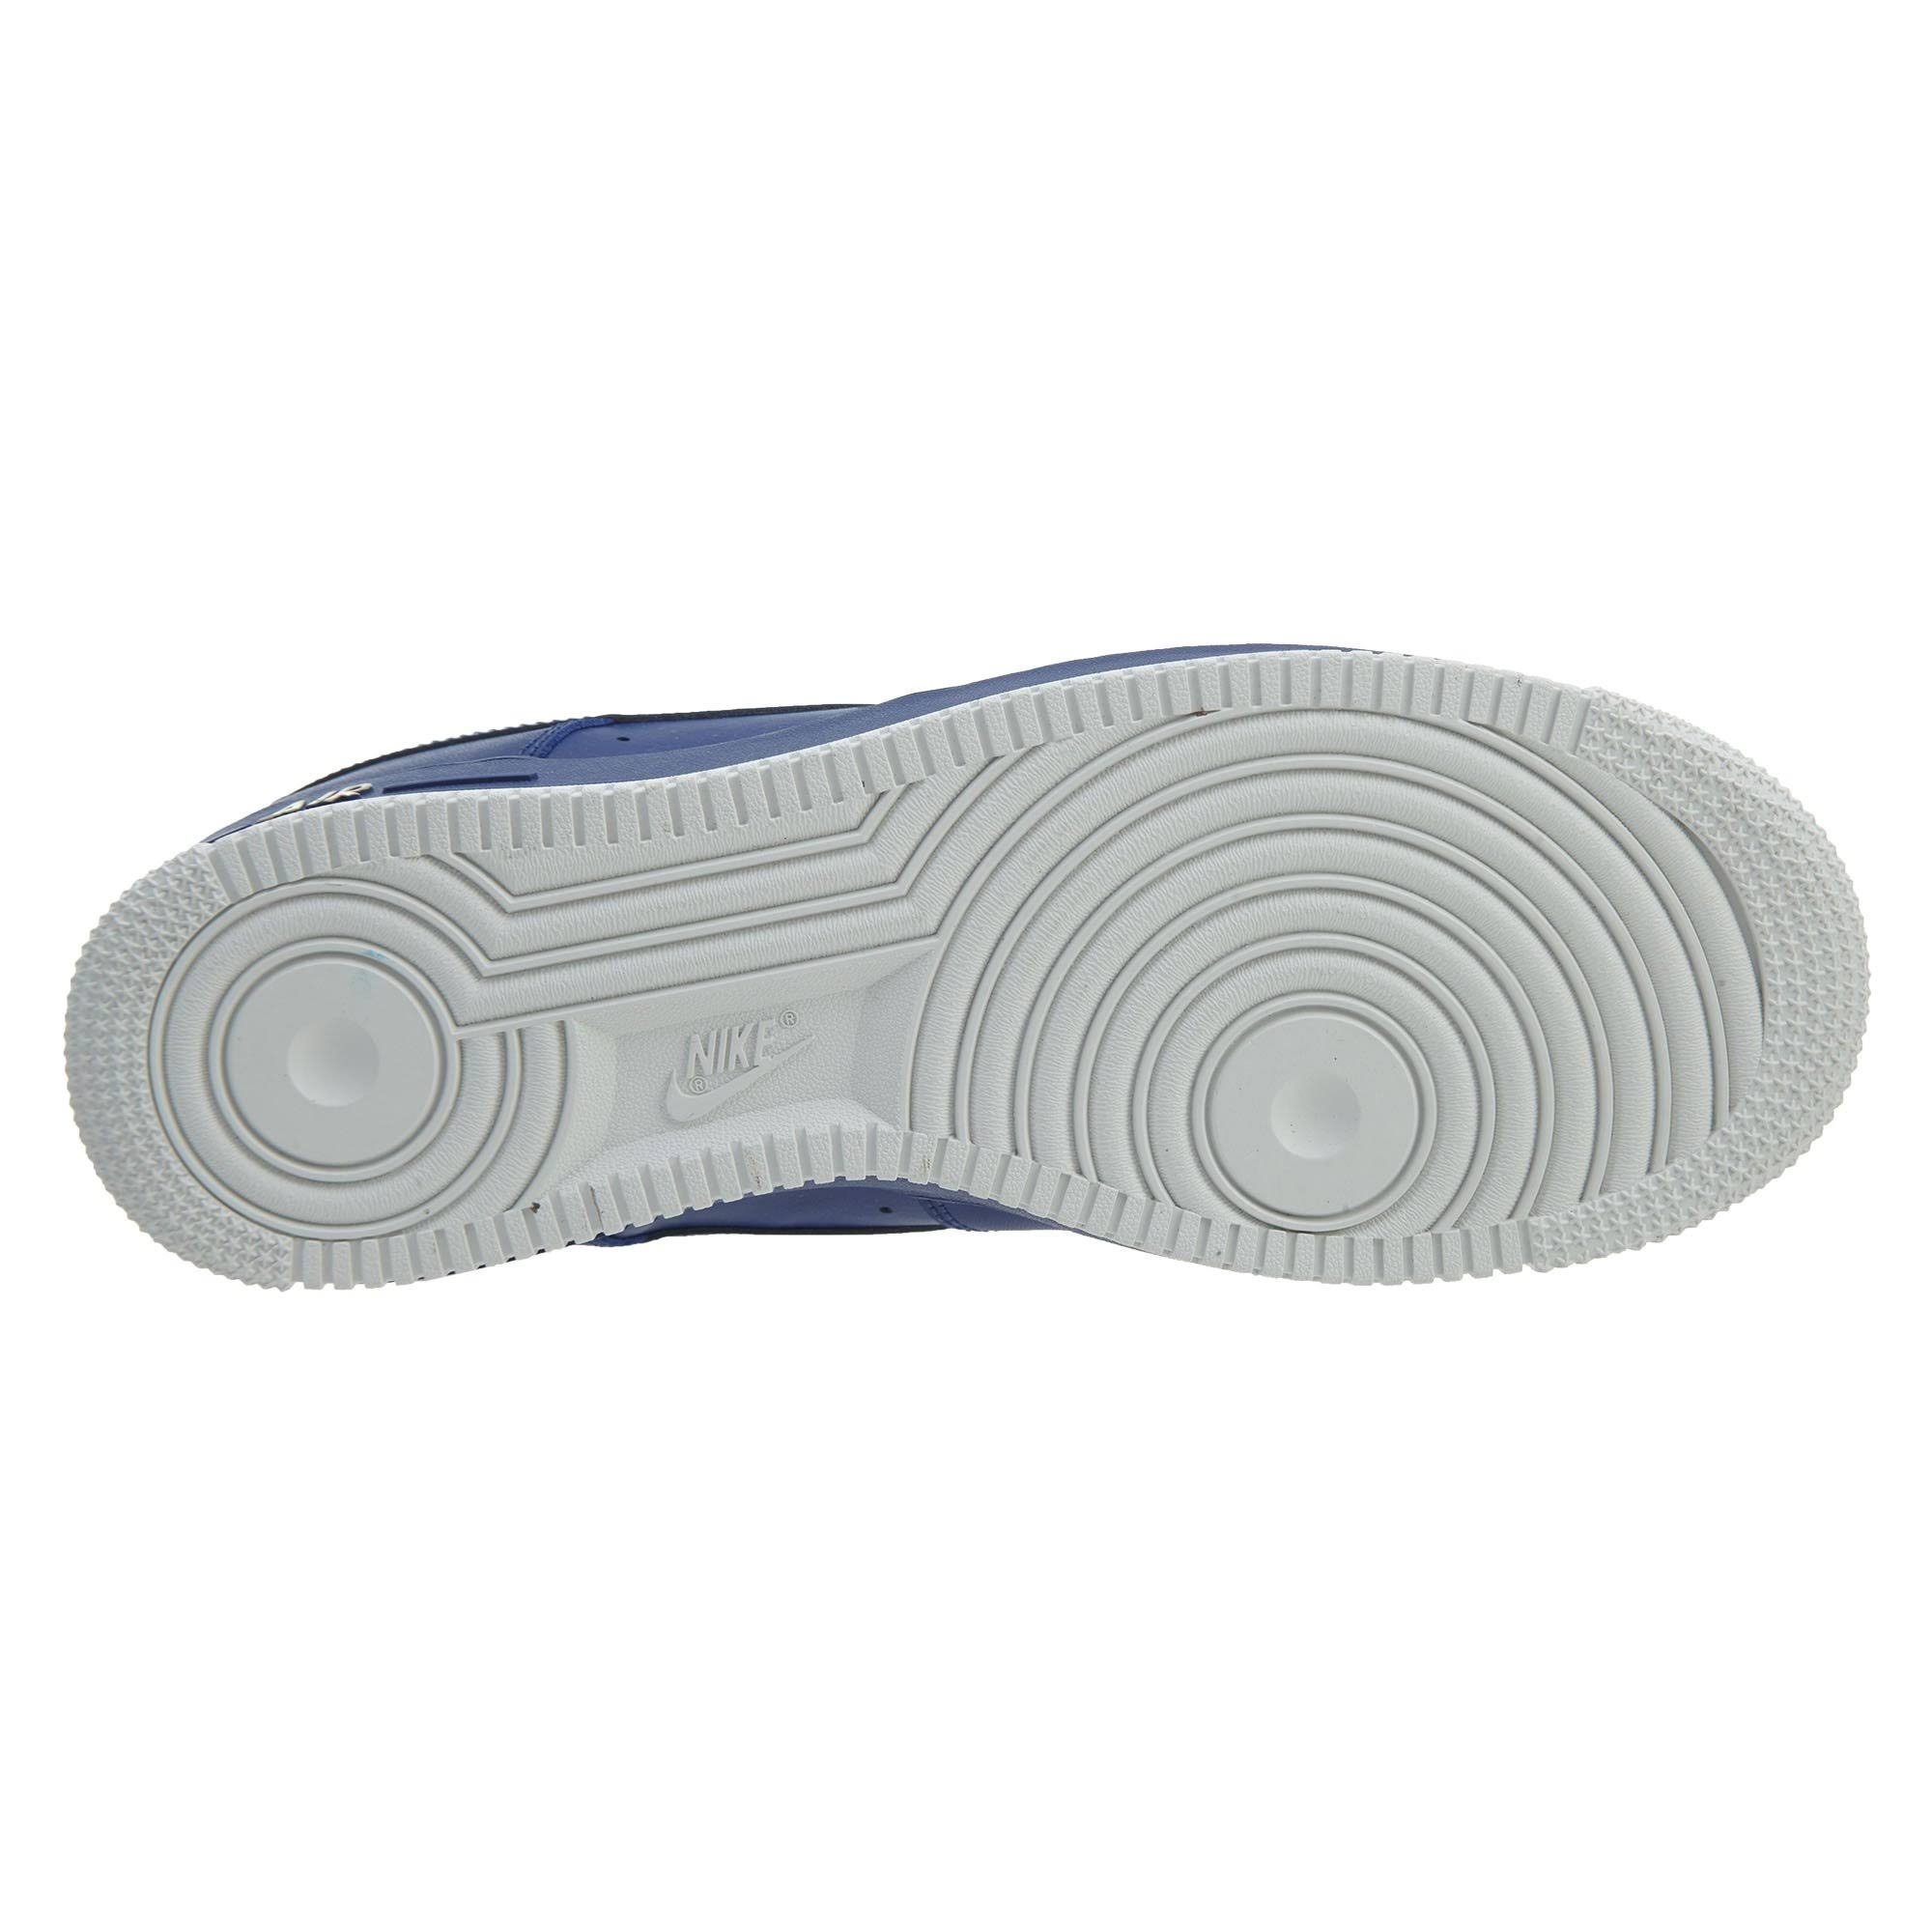 5 Para Tamaño Blue Aa4083402 Royal White Air 8 Nike Hombre Low Calzado Summit Deep 1 Force vxXBf